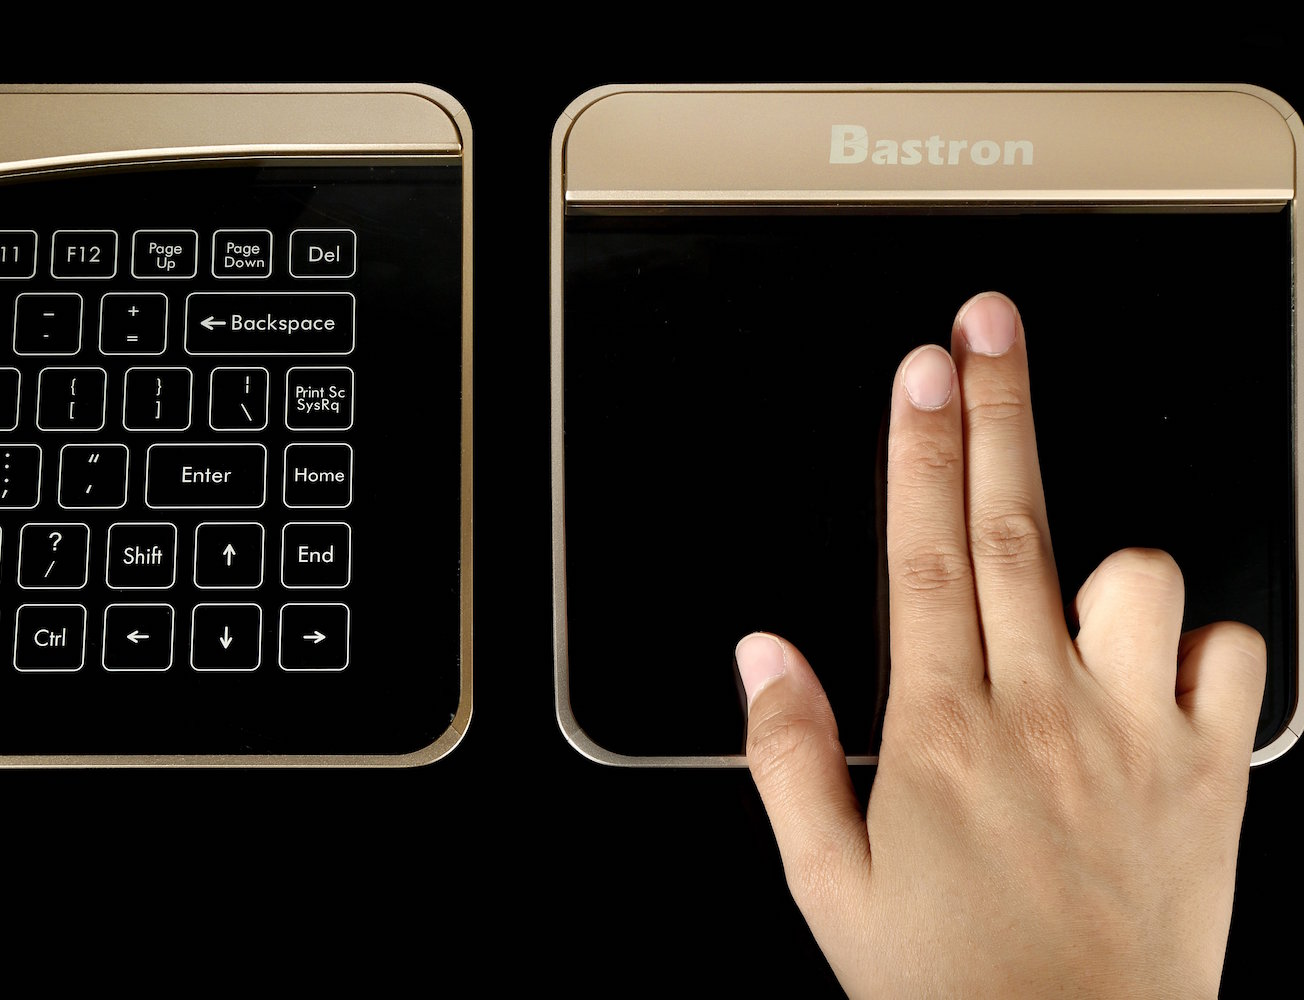 Magic Class Touchpad Trackpad with Gesture Control by Bastron 02